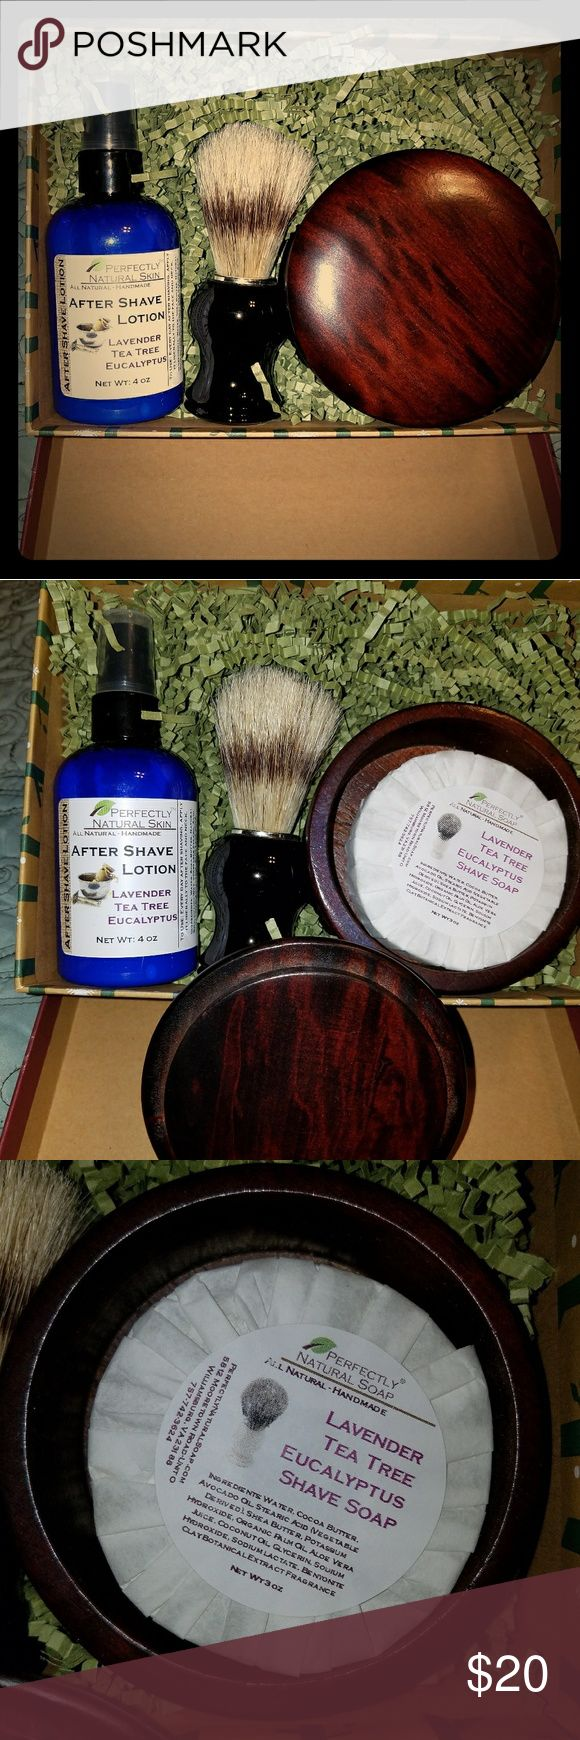 Men's Shave Kit ~ Lavender tea tree Eucalyptus It has shave soap and after shave lotion all are all natural and handmade the soap is 3oz and the after shave lotion 4oz it also includes a shave brush and shave bowl. Made by Perfectly Natural ~ NWOT ~ No trades and no low balls please and please. Thank you. Perfectly Natural  Other